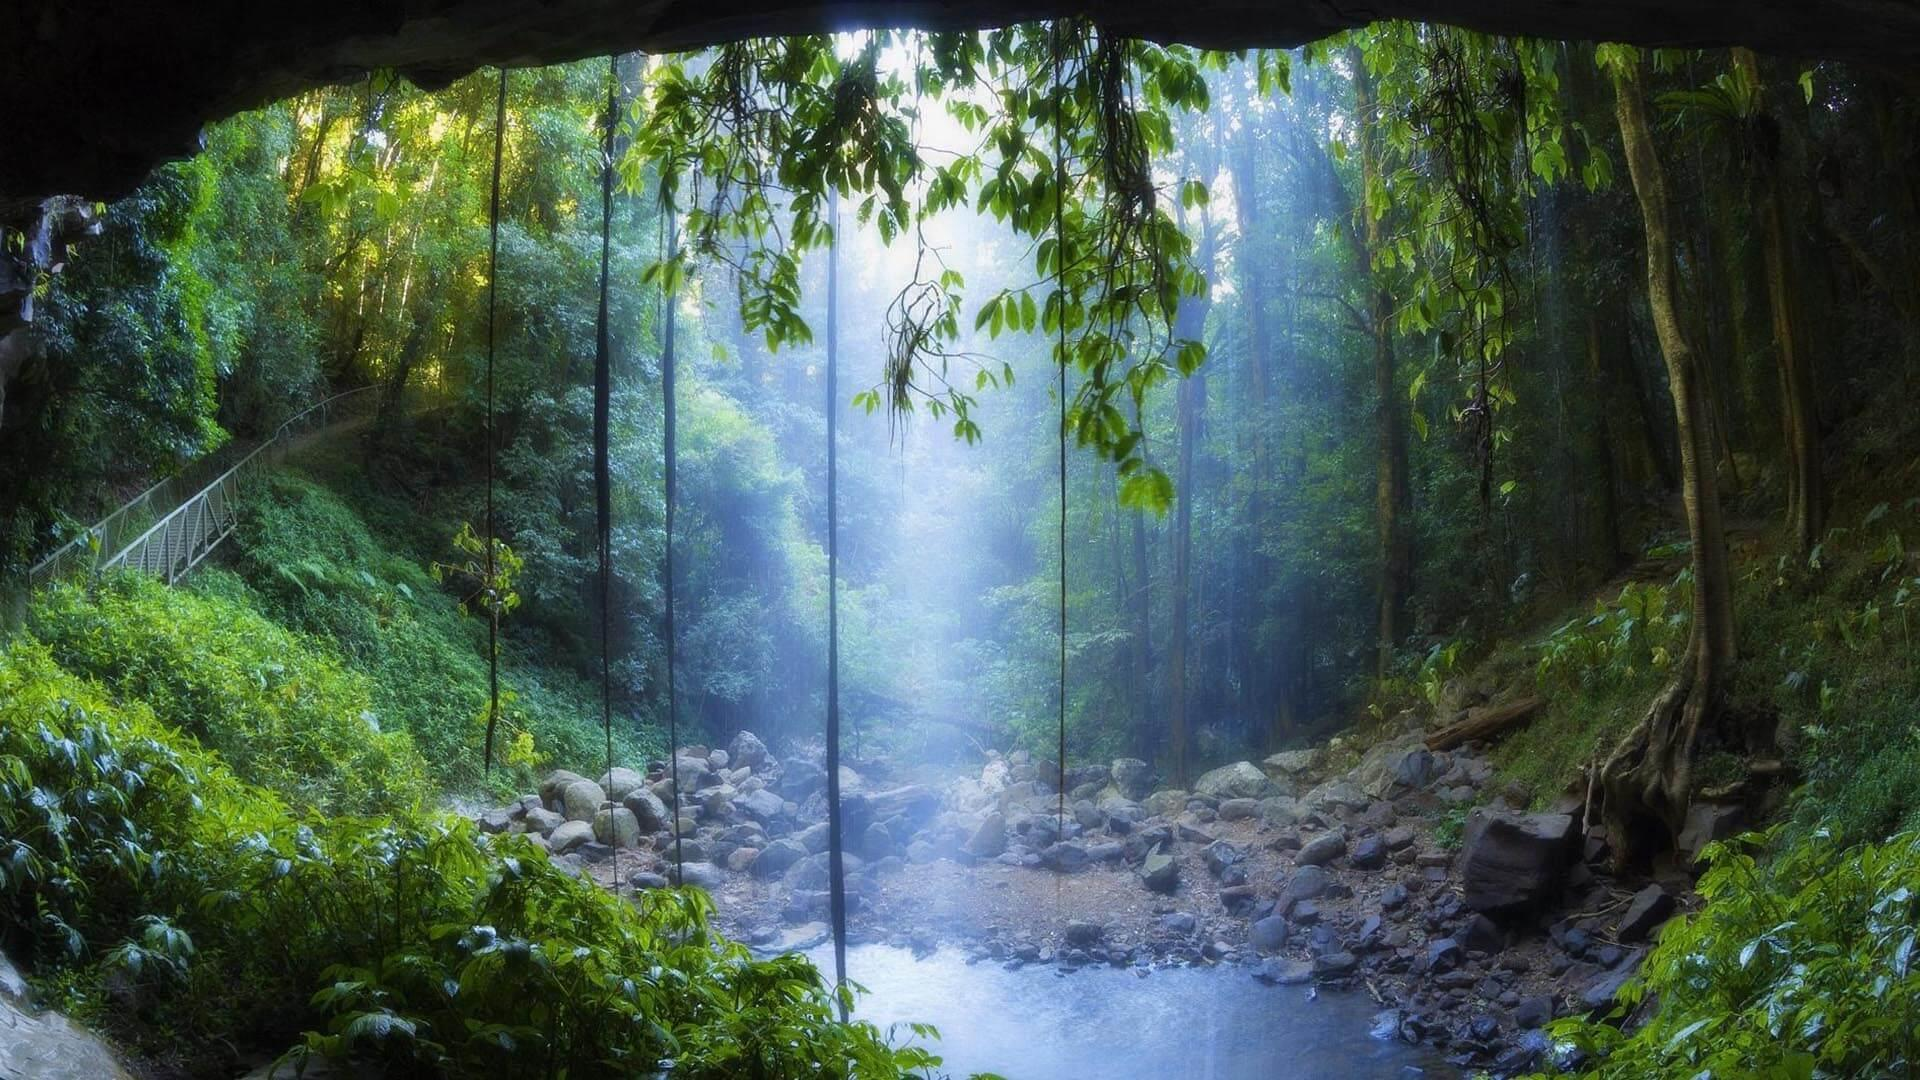 Rain Forest Wallpaper Hd For Android Apk Download